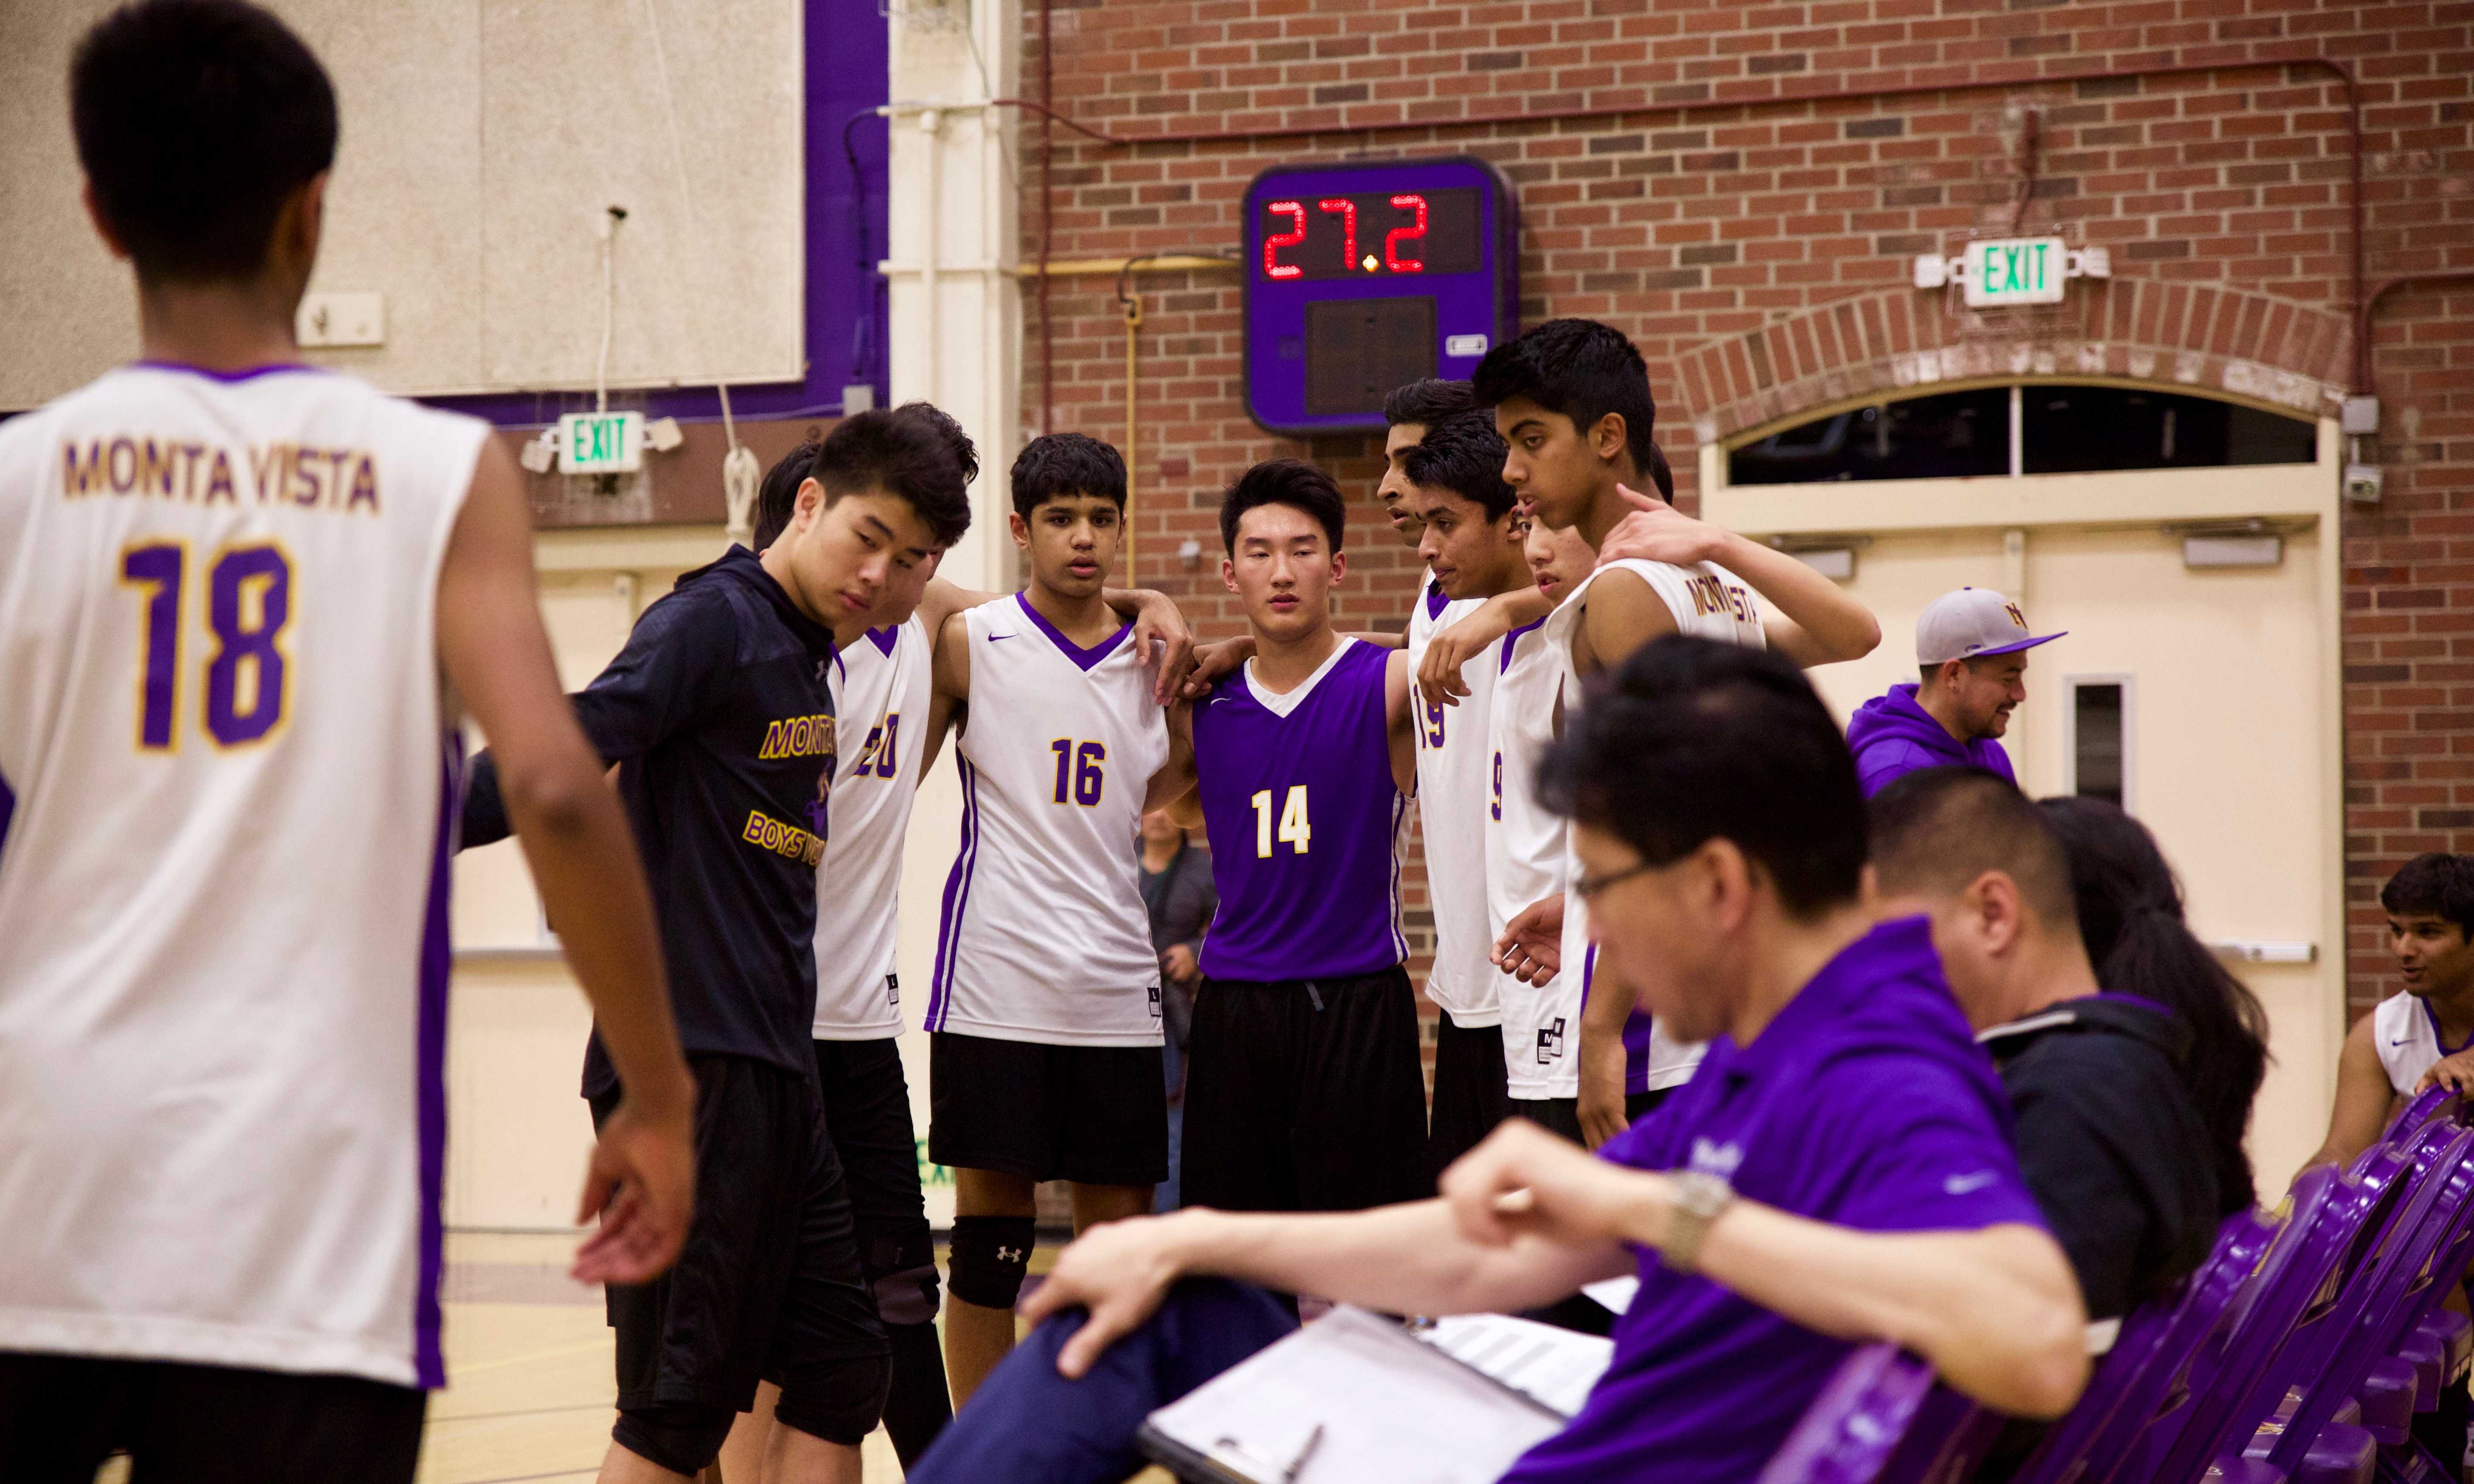 One kill after another: Assistant coach Calvin Wong talks about the volleyball season's success